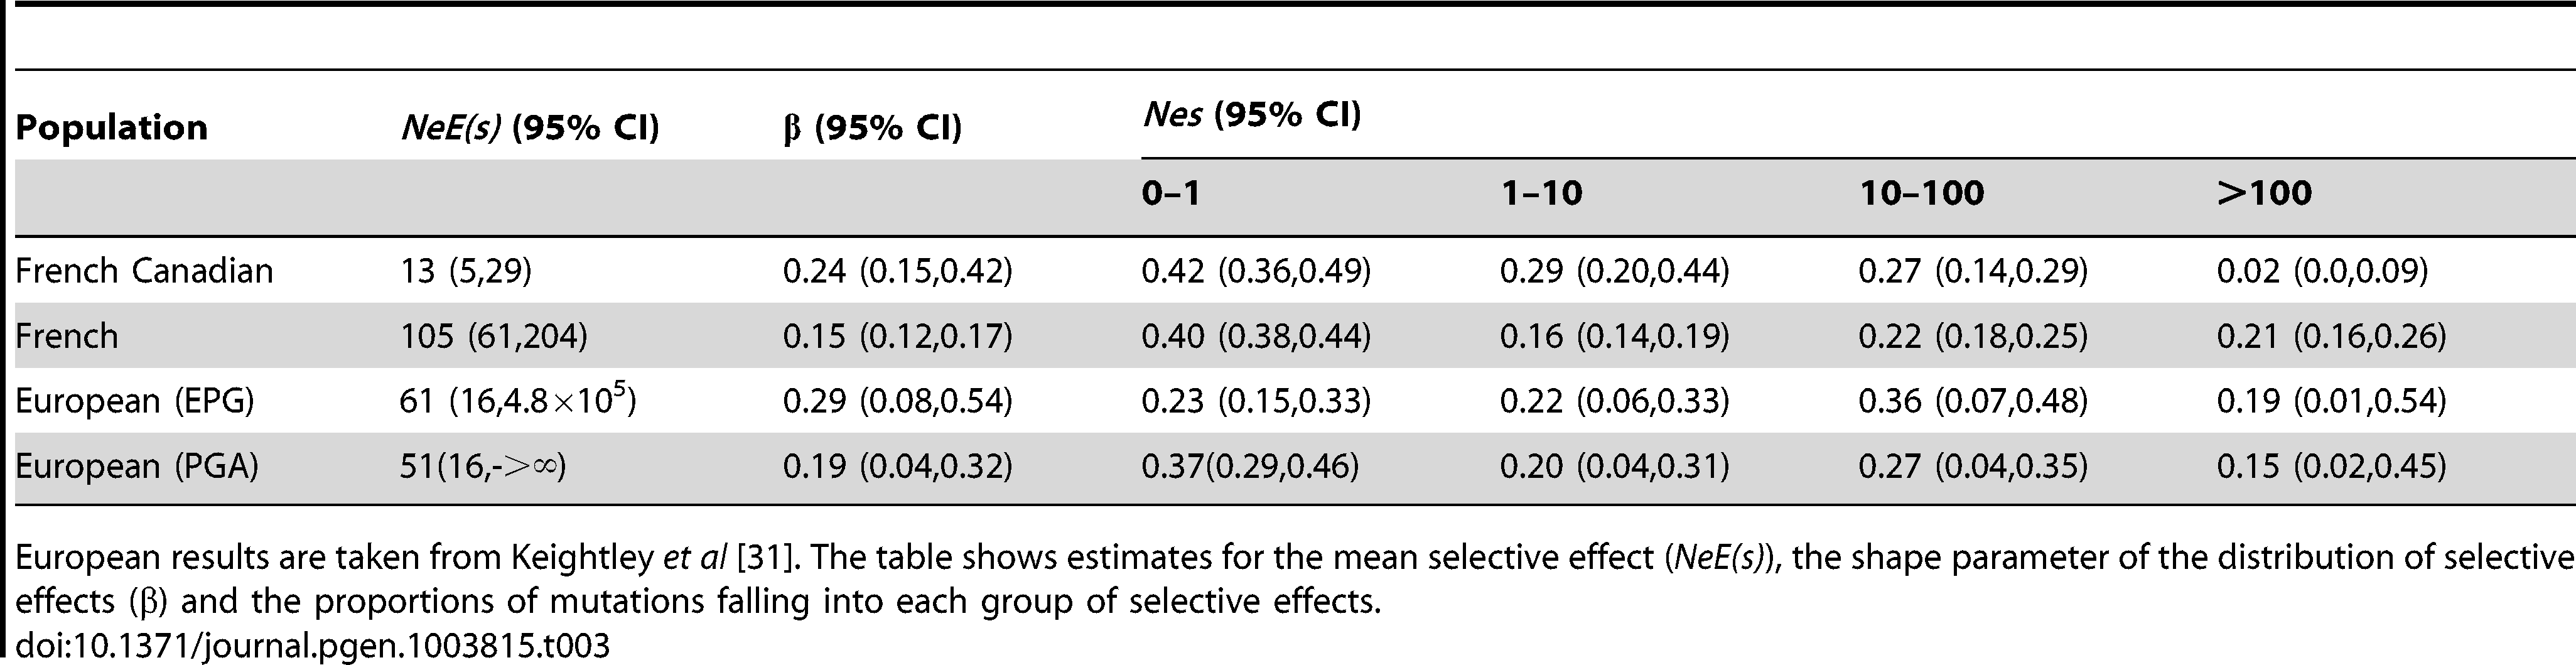 Estimated parameters for the distribution of fitness effects of new deleterious mutations.